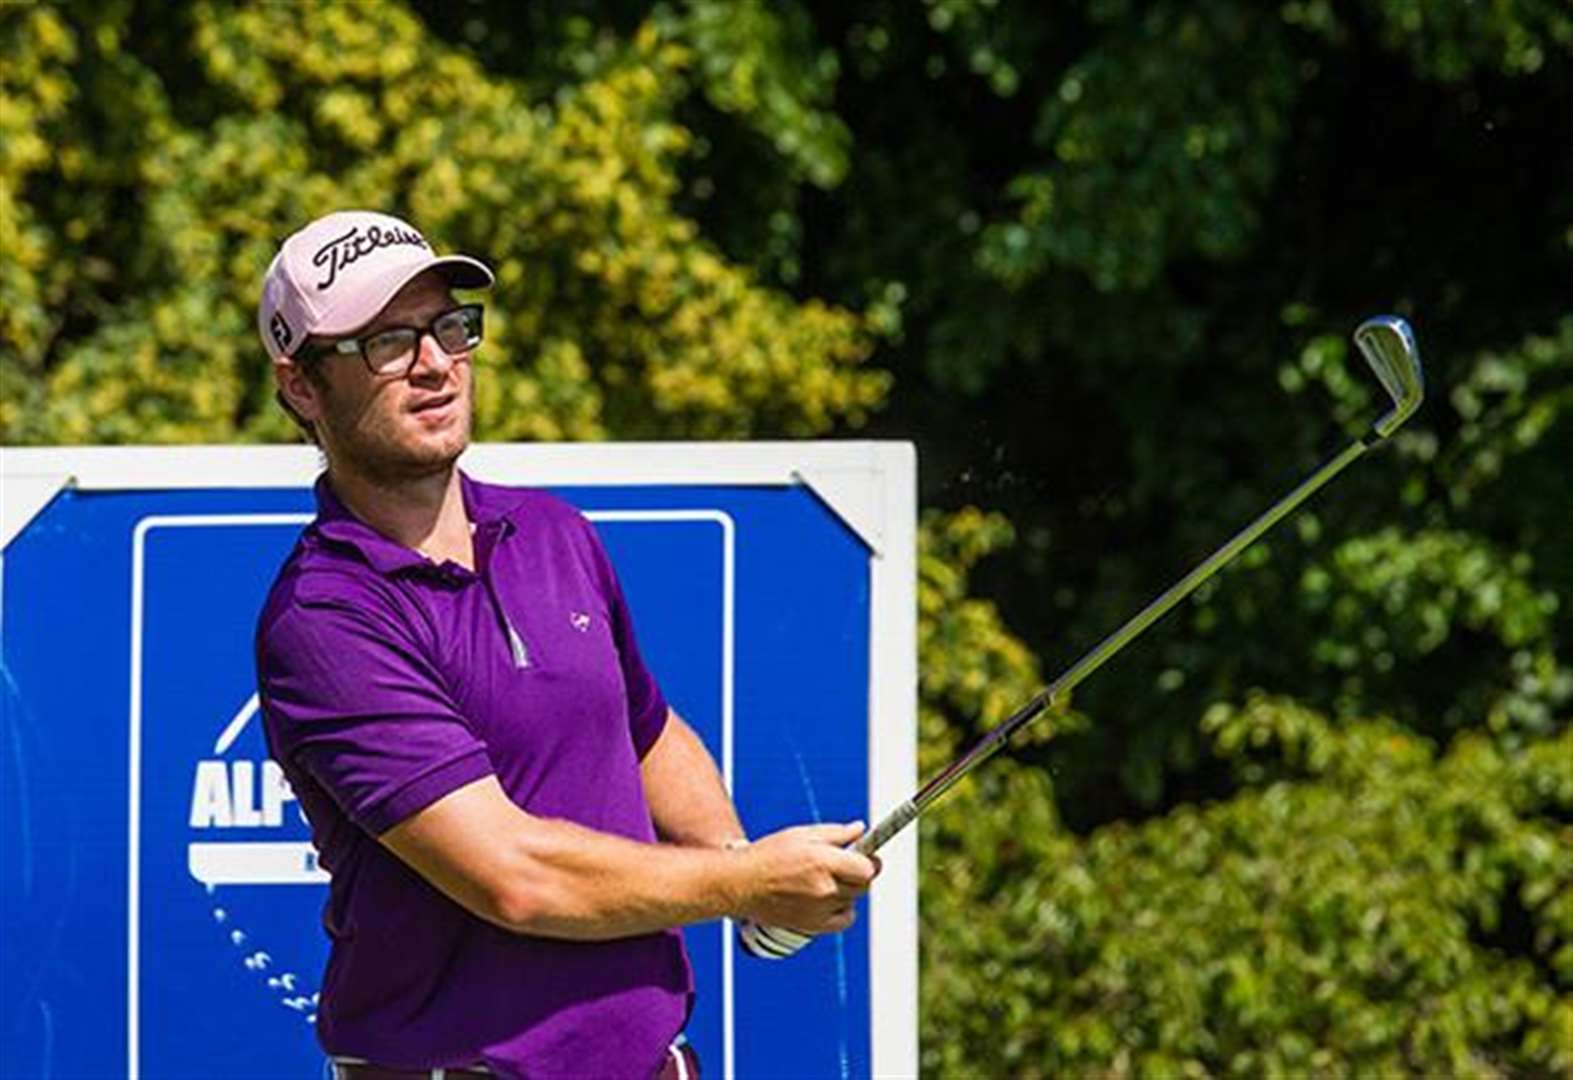 Kent golfers through to final qualifier for The Open